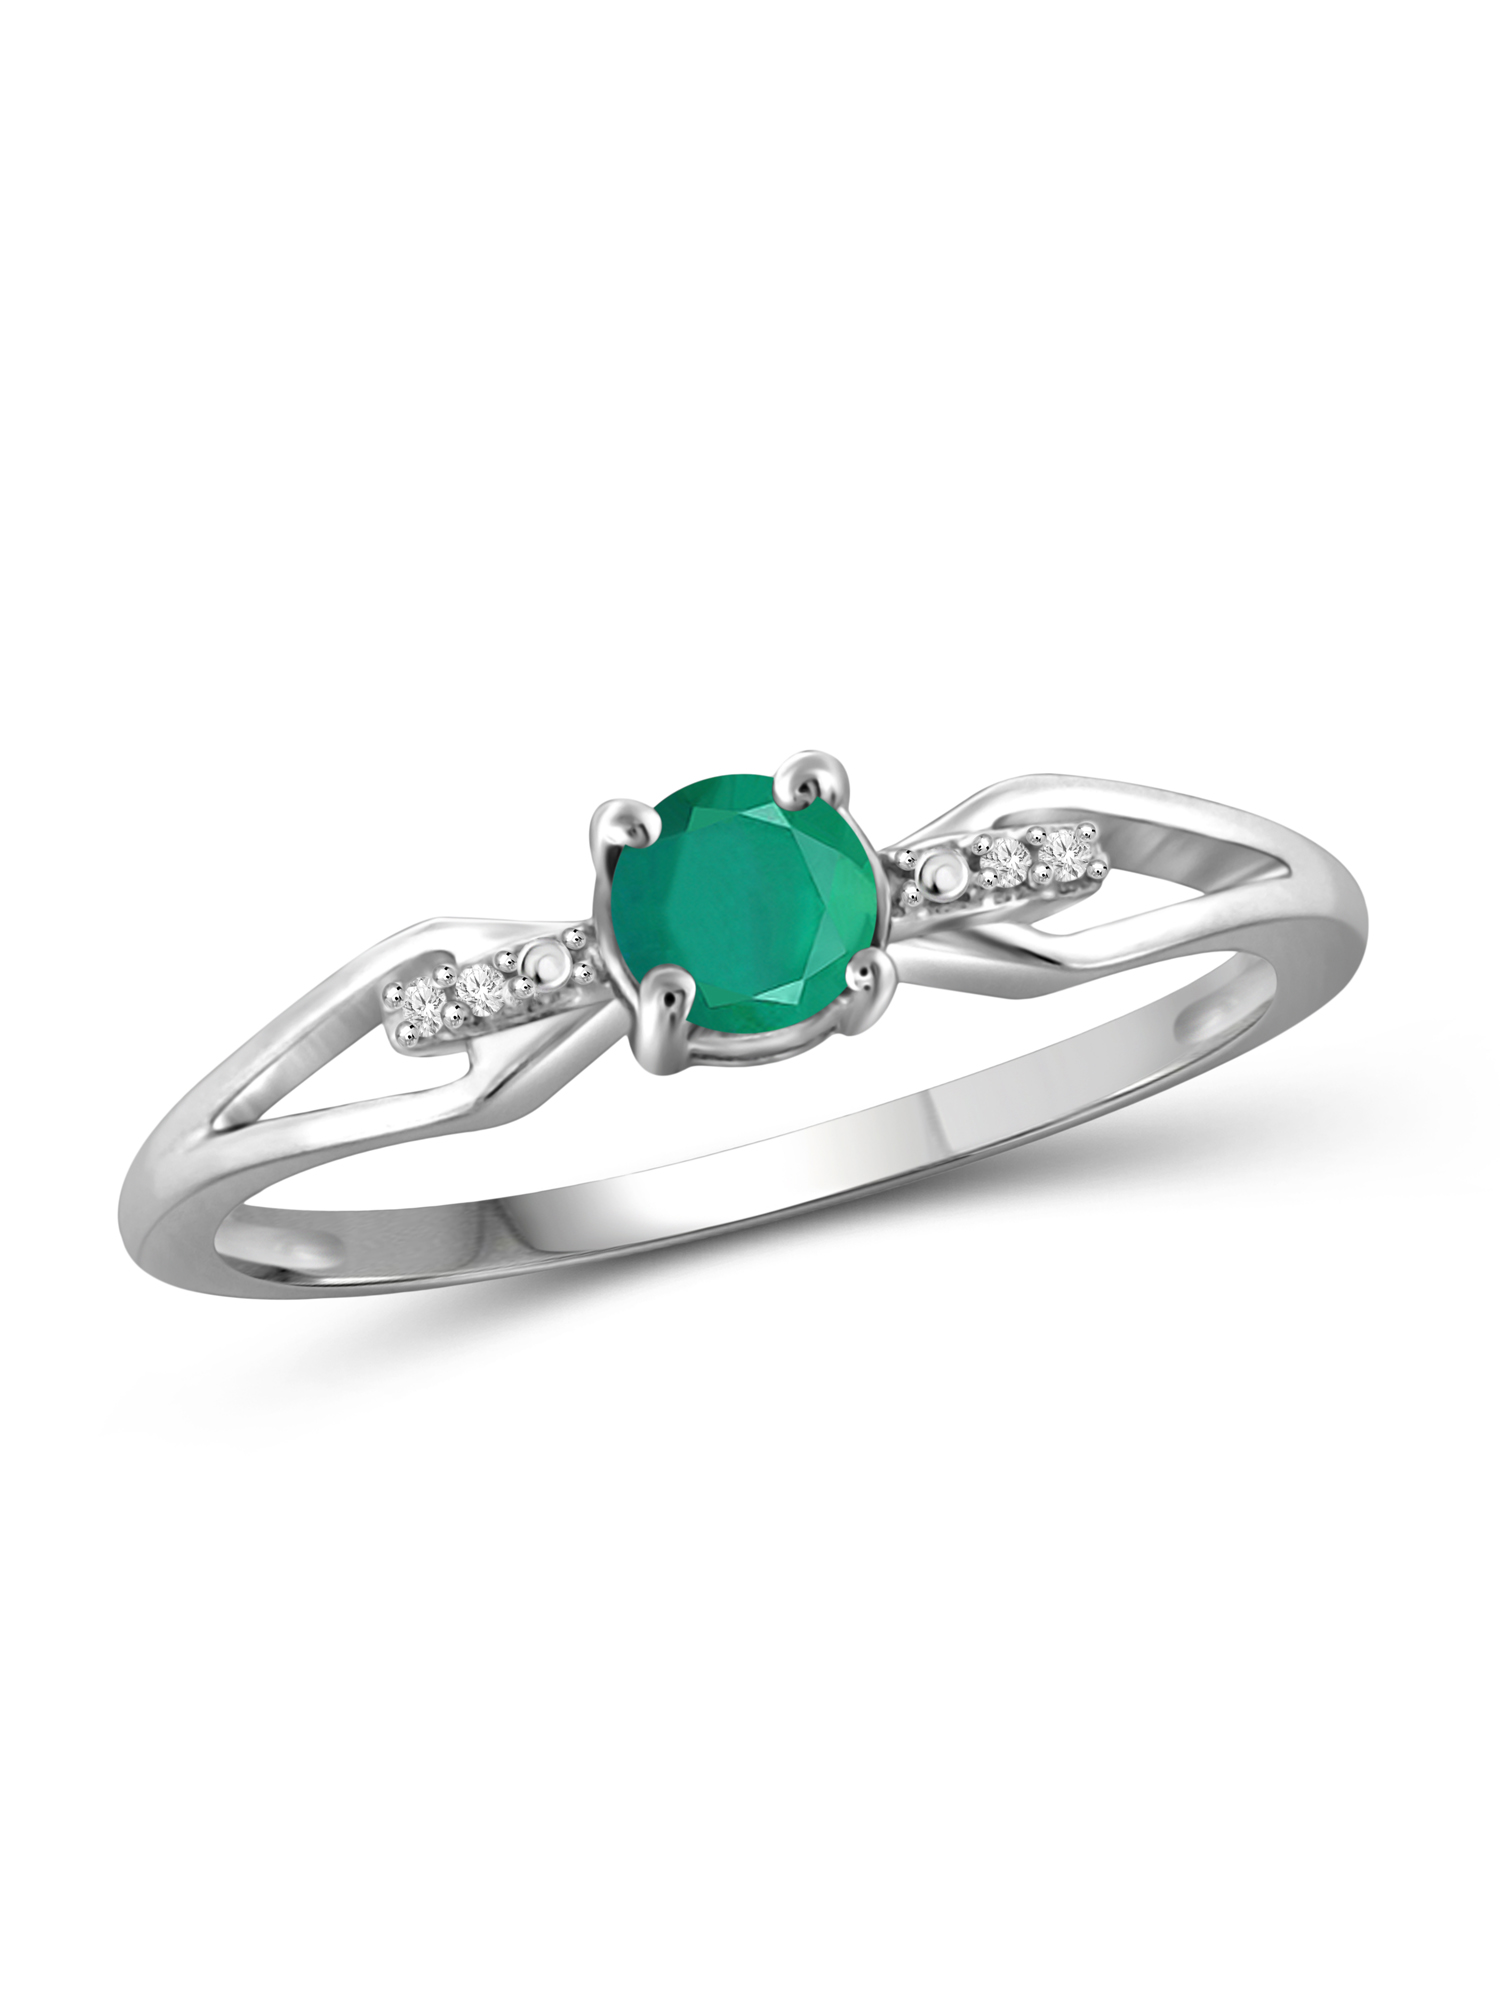 1/2 Carat T.G.W. Emerald and White Diamond Accent Sterling Silver Ring